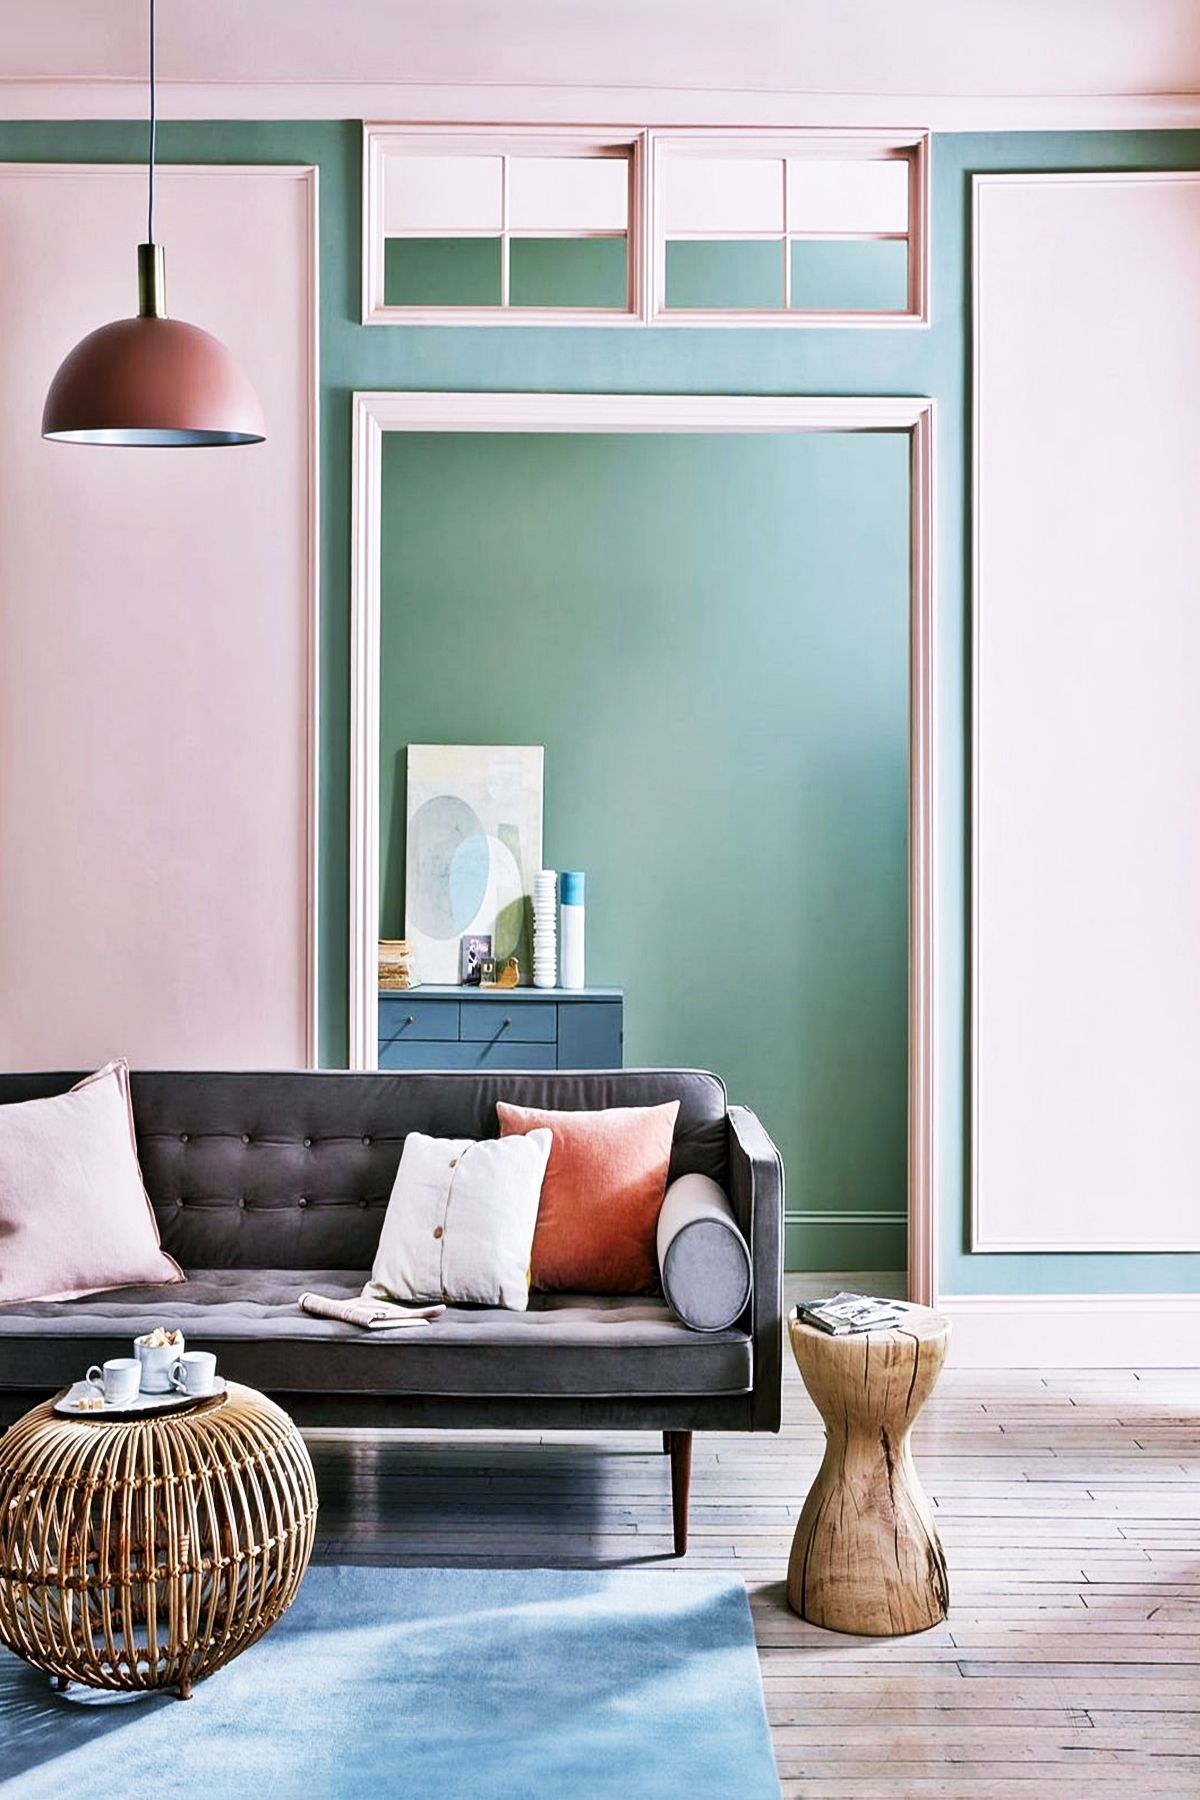 Modern Living Room Paint Design Trends 2020 Teal And White Is